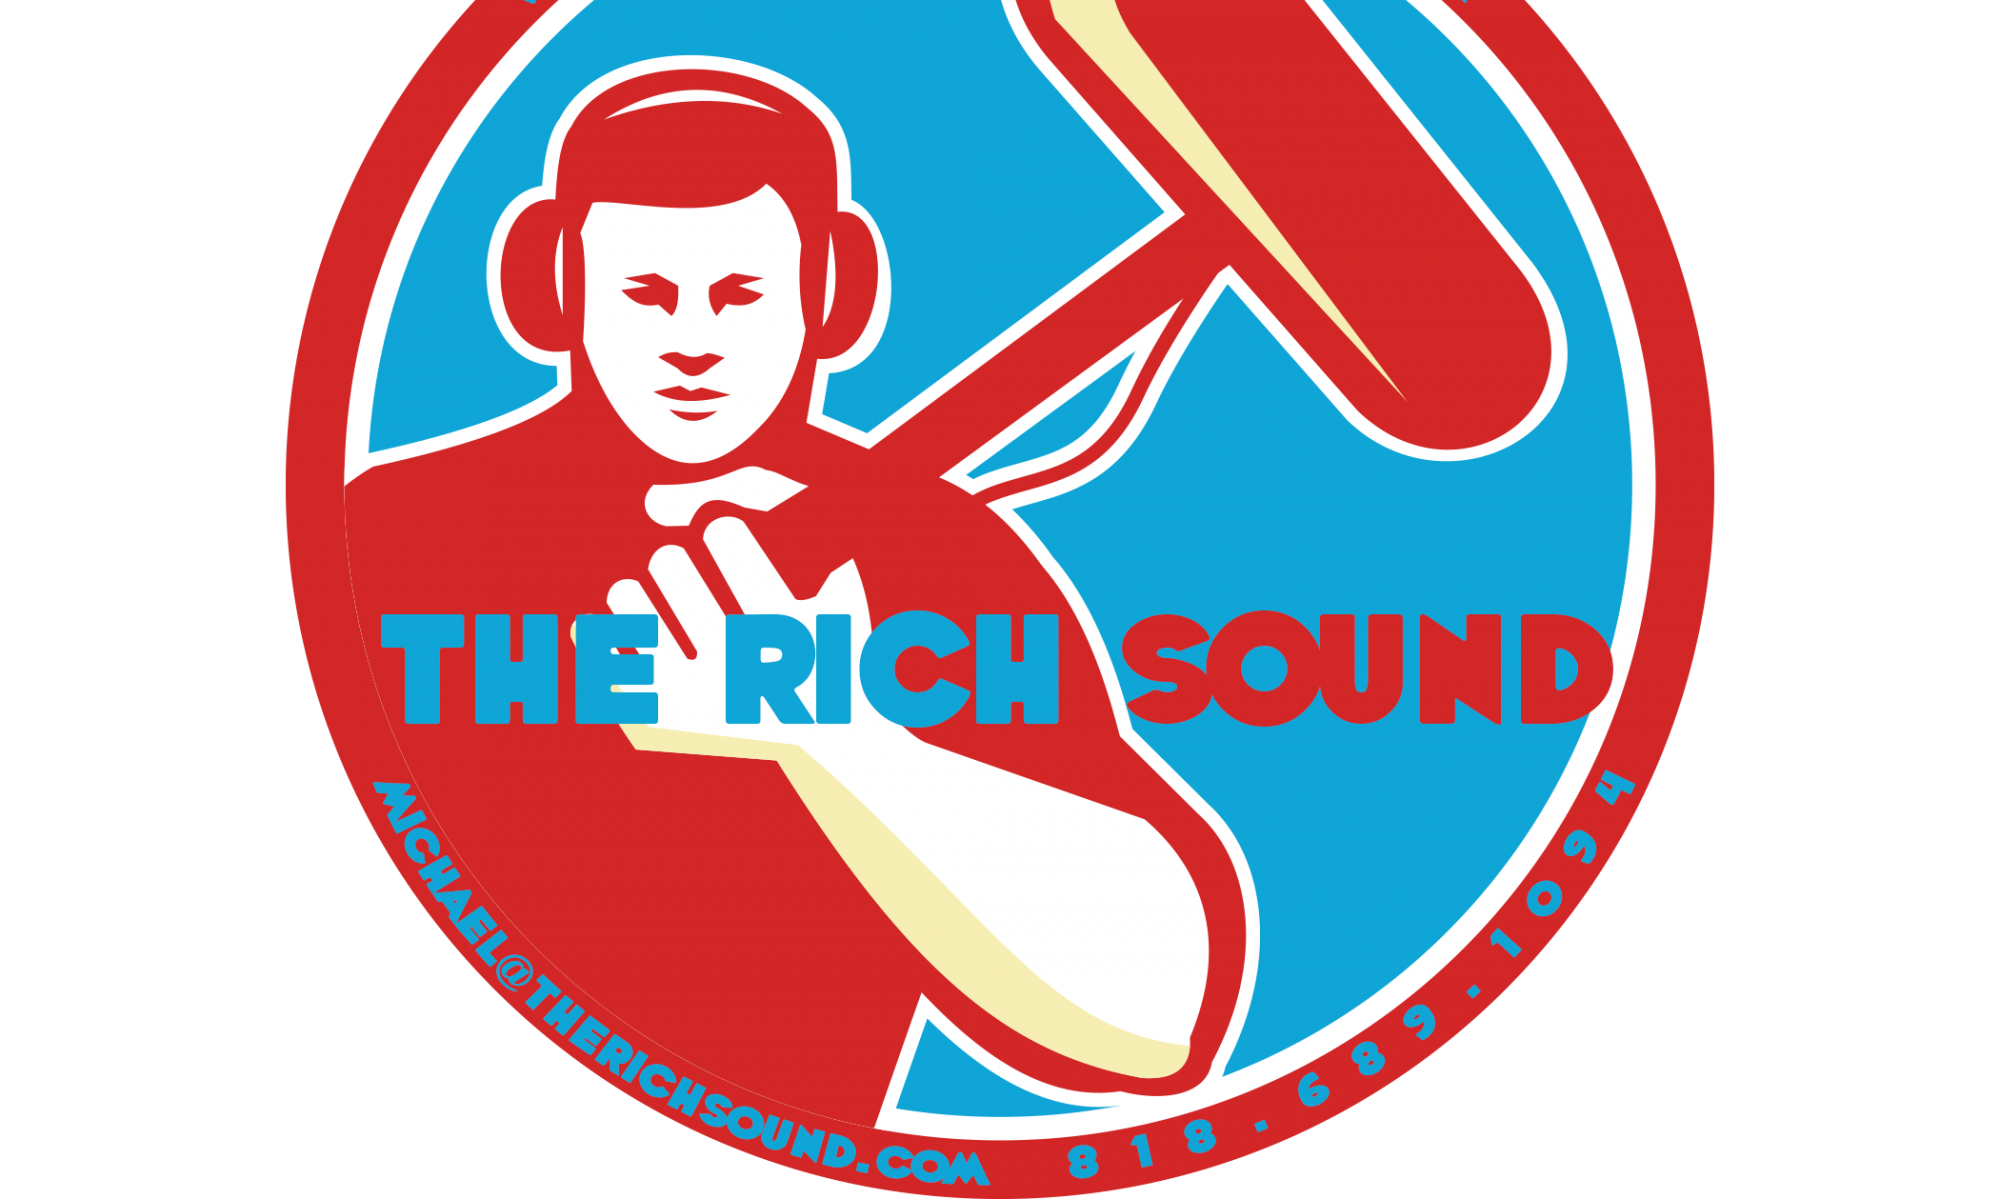 The Rich Sound